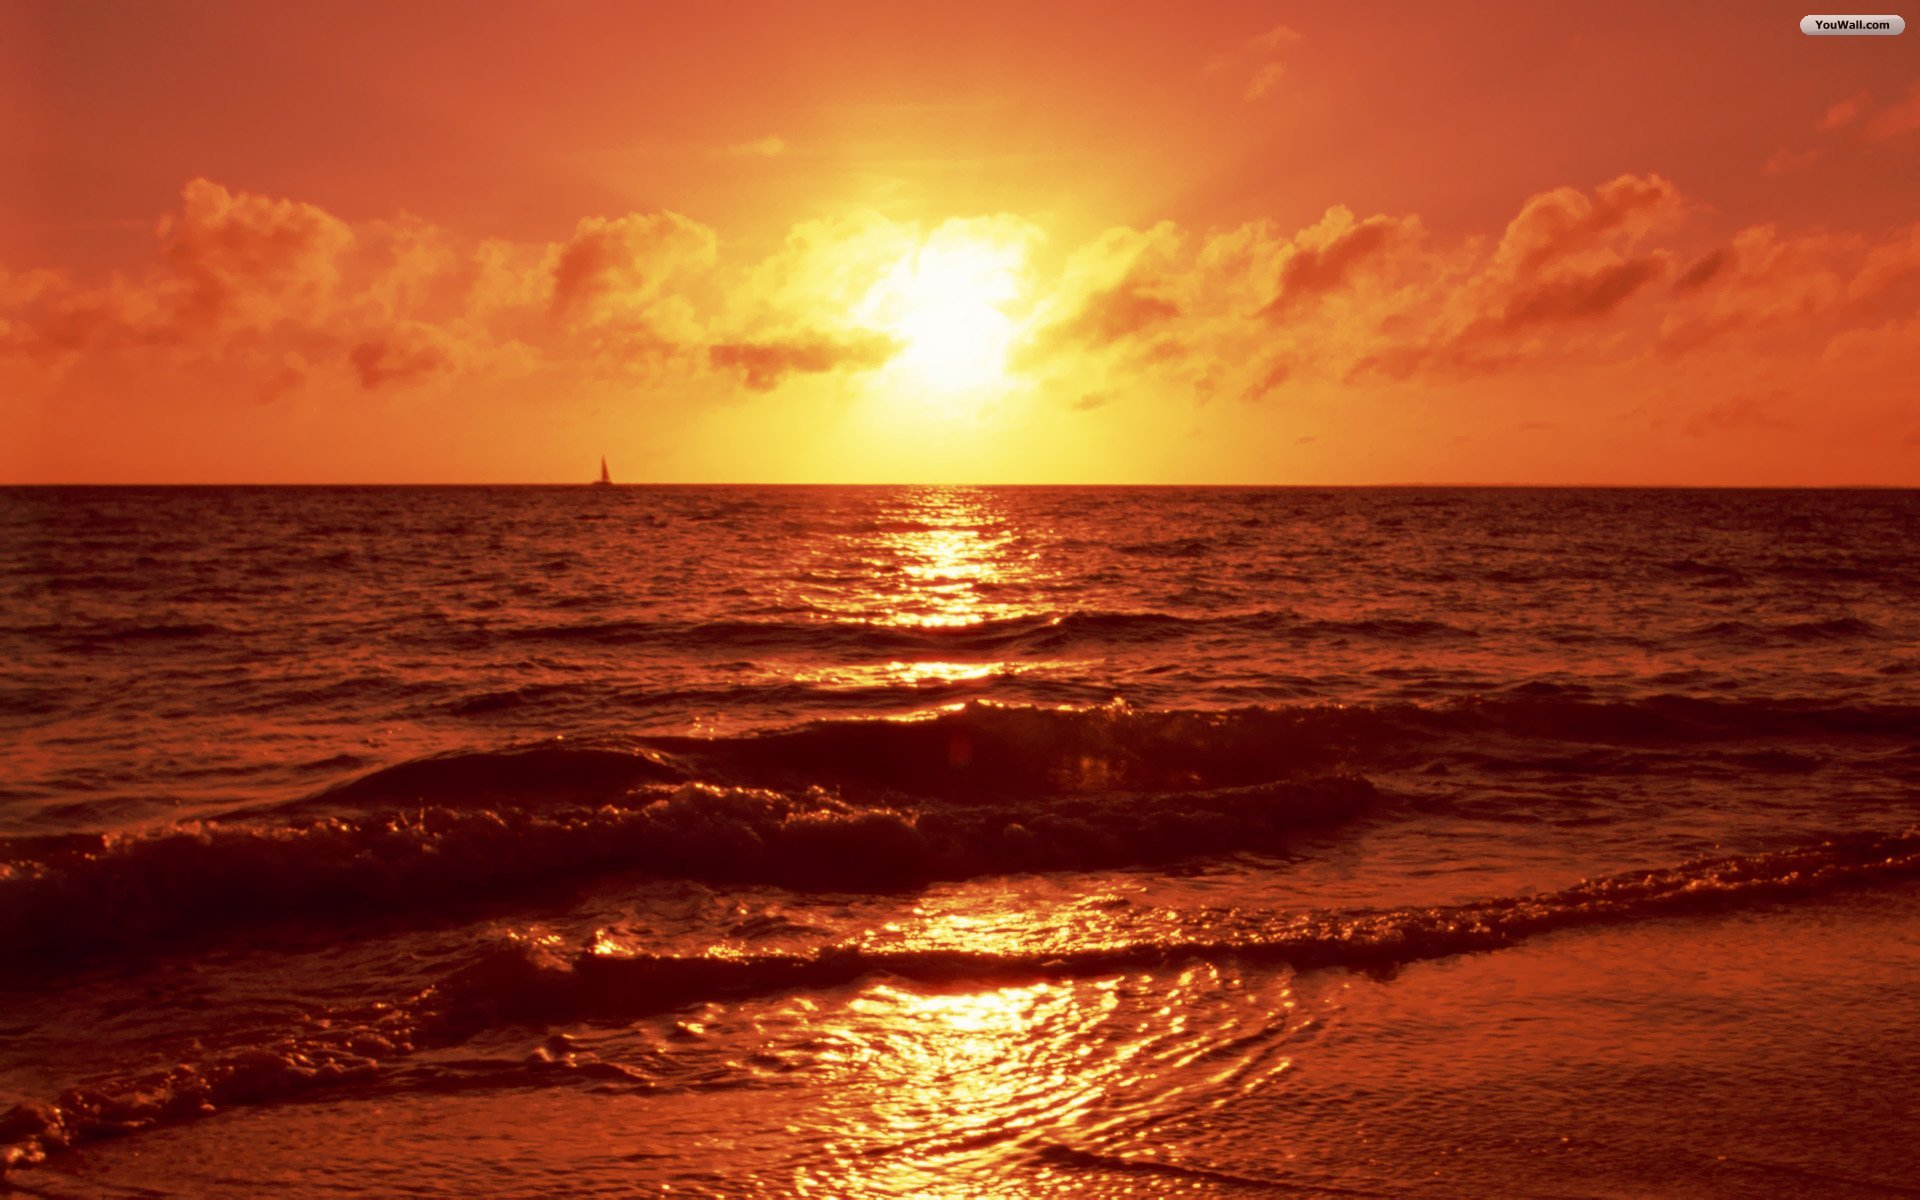 Beach Sunset Wallpaper Image Picture Wallpaper with 1920x1200 1920x1200